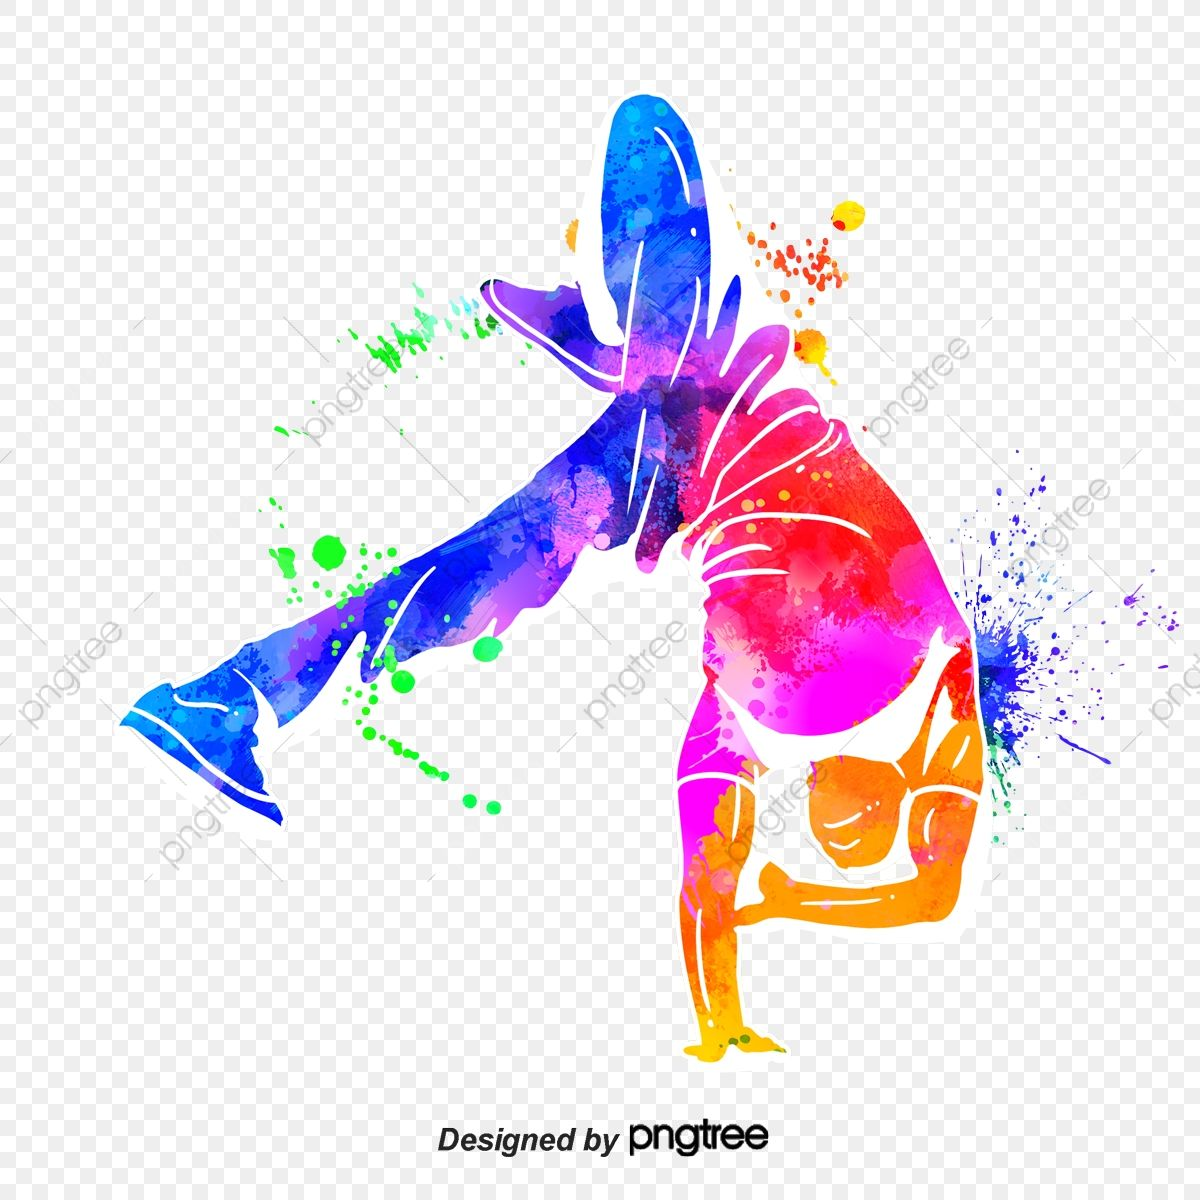 Silhouette Of Creative Hip Hop Dance Characters Dance Multicolored Character Png Transparent Clipart Image And Psd File For Free Download In 2021 Hip Hop Dance Music Logo Design Silhouette Art